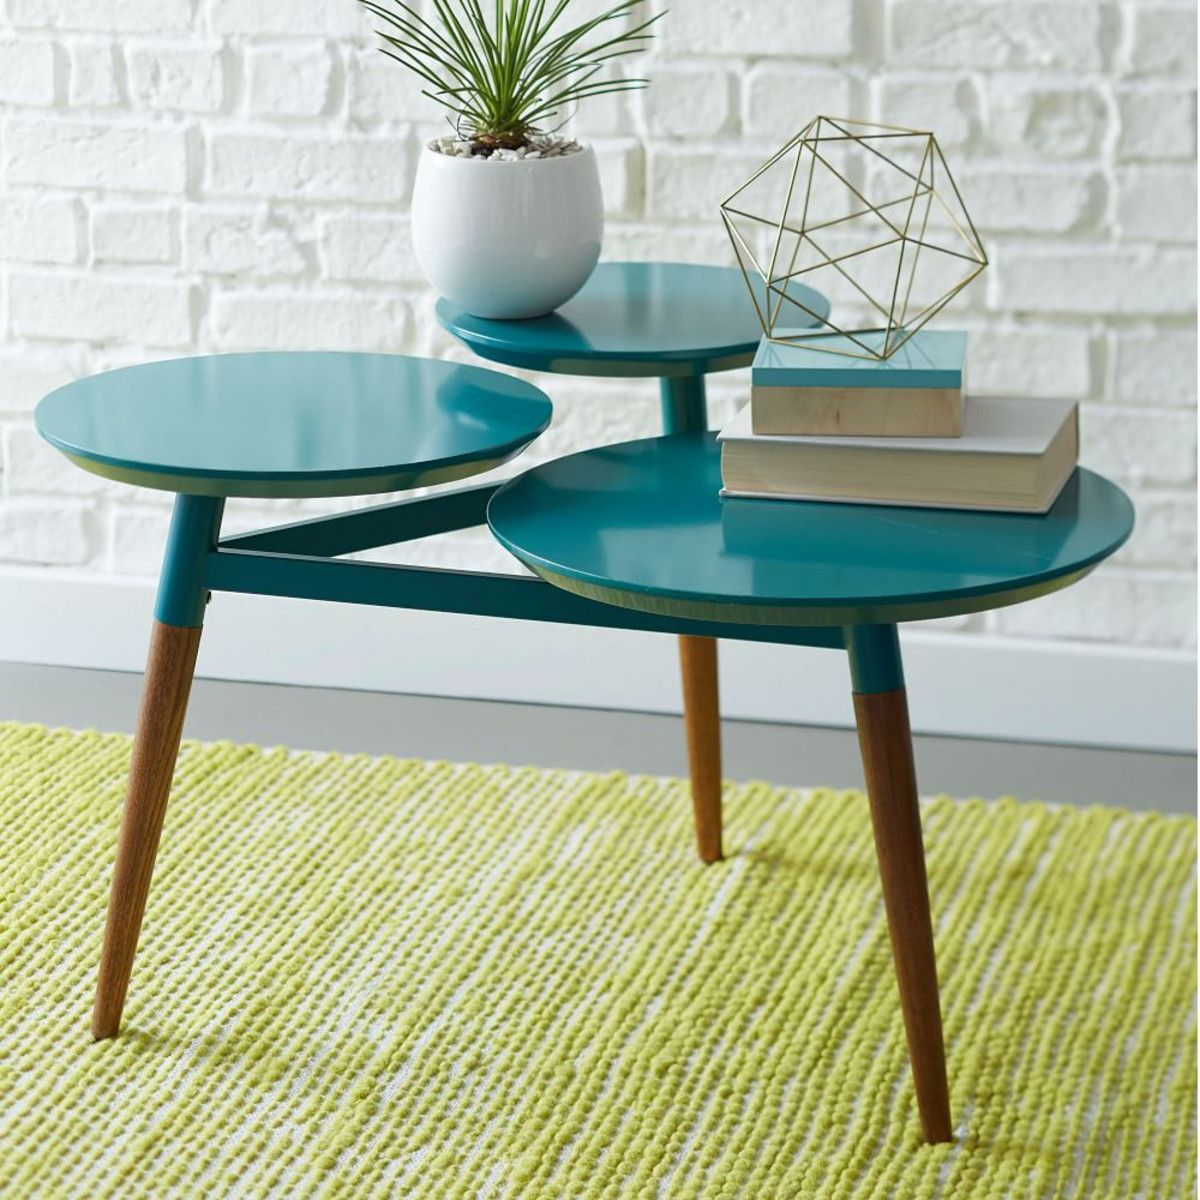 West Elm Clover coffee table in Bermuda and Pecan